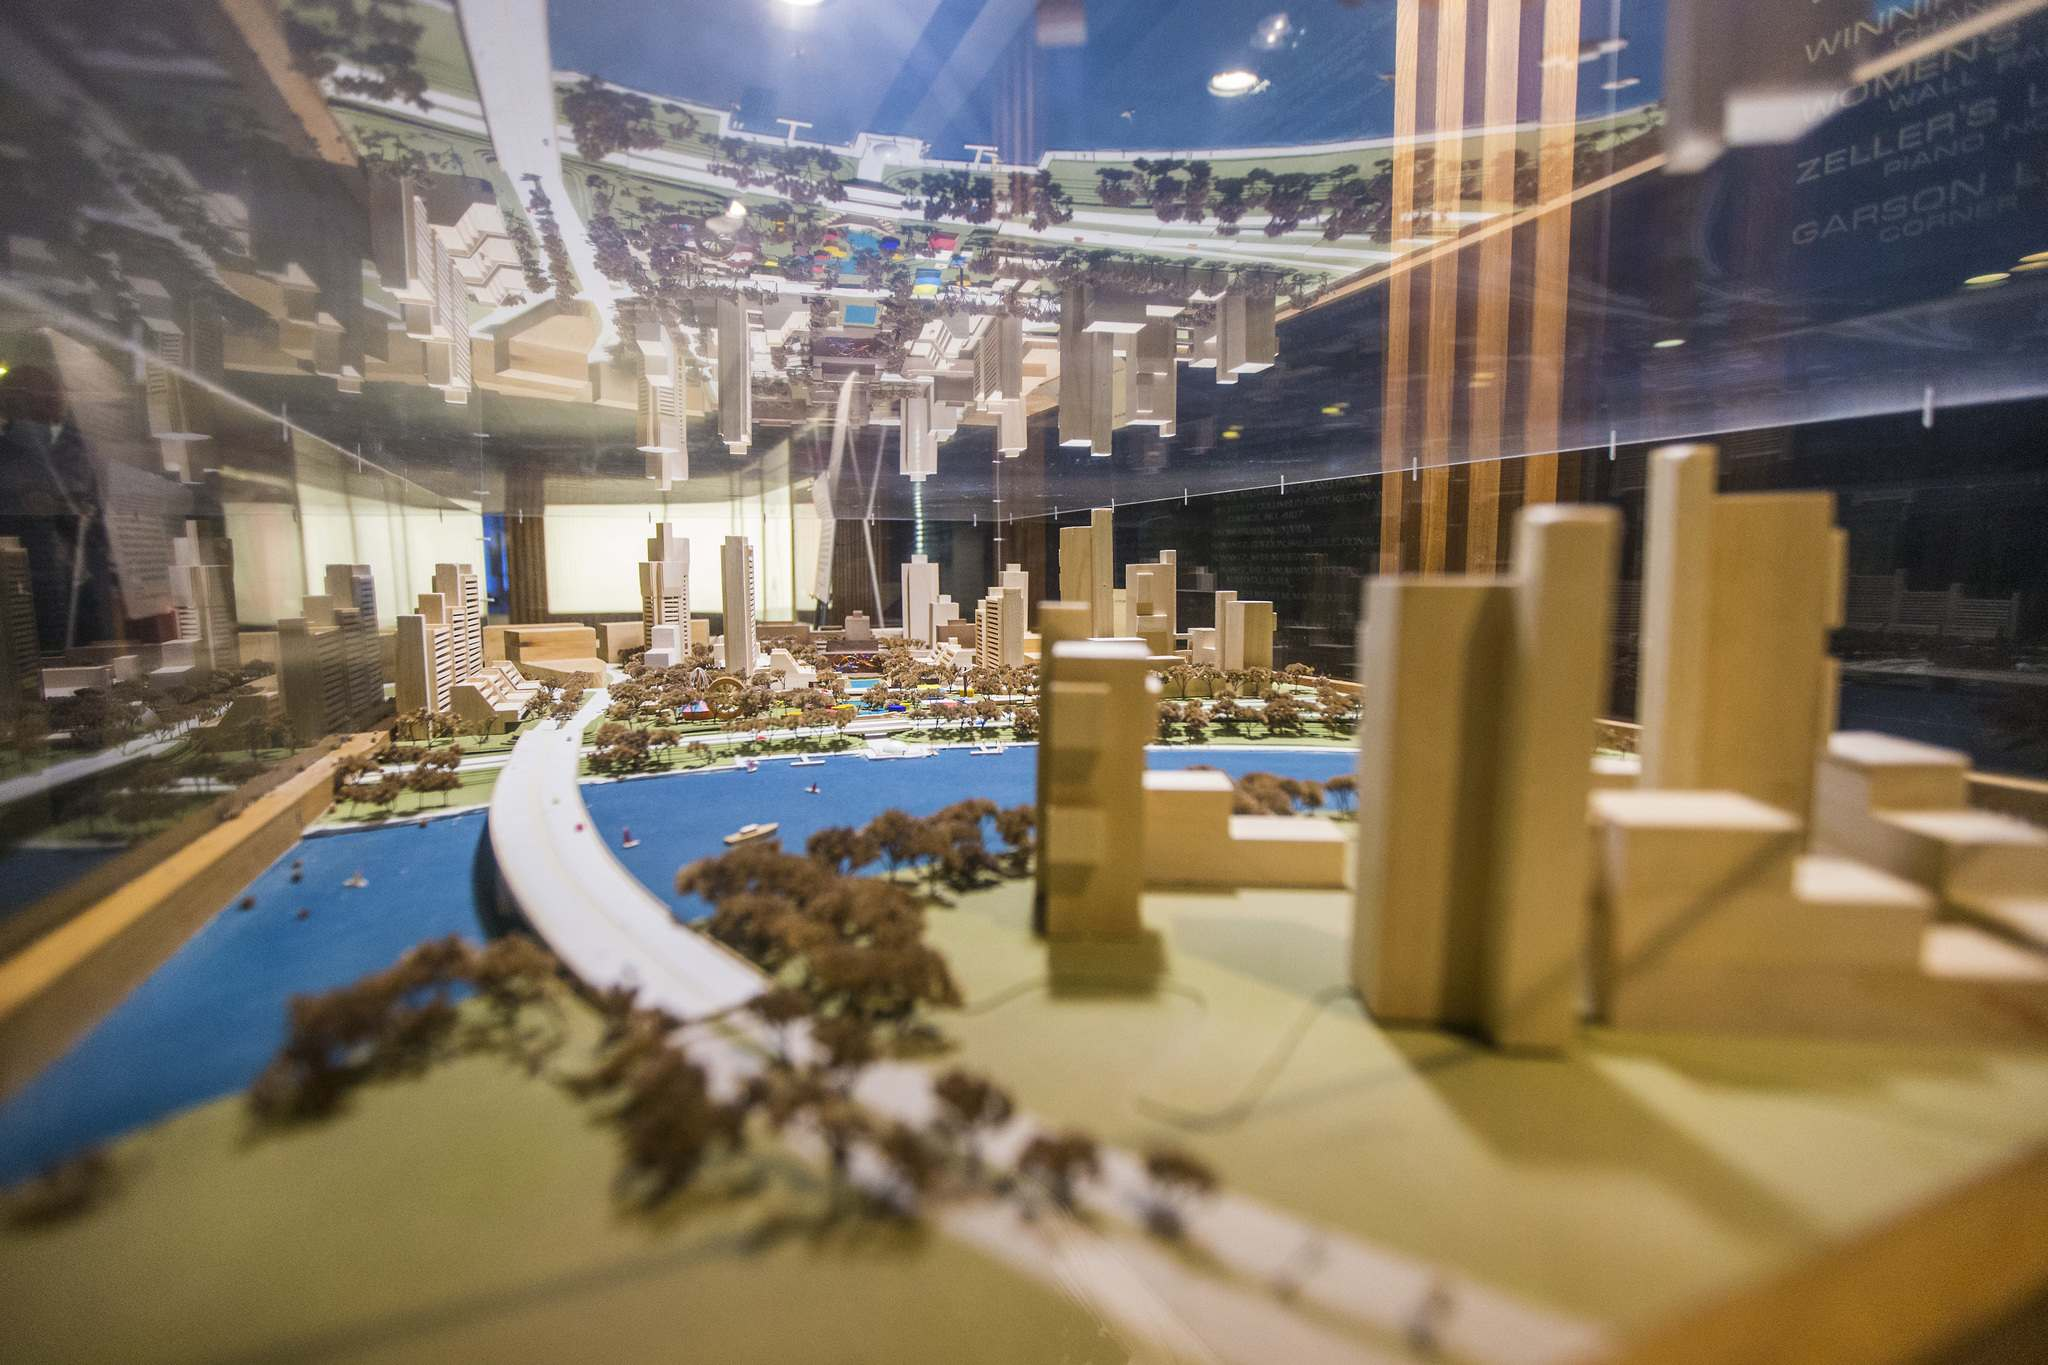 MIKAELA MACKENZIE / WINNIPEG FREE PRESS</p><p>A model of the Cultural Centre Renewal Scheme, part of an ambitious proposal to combat what was seen as downtown's decline in the 1950s and 1960s. Mayor Stephen Juba said the plan would make Winnipeg known as 'the city of the future.'</p>